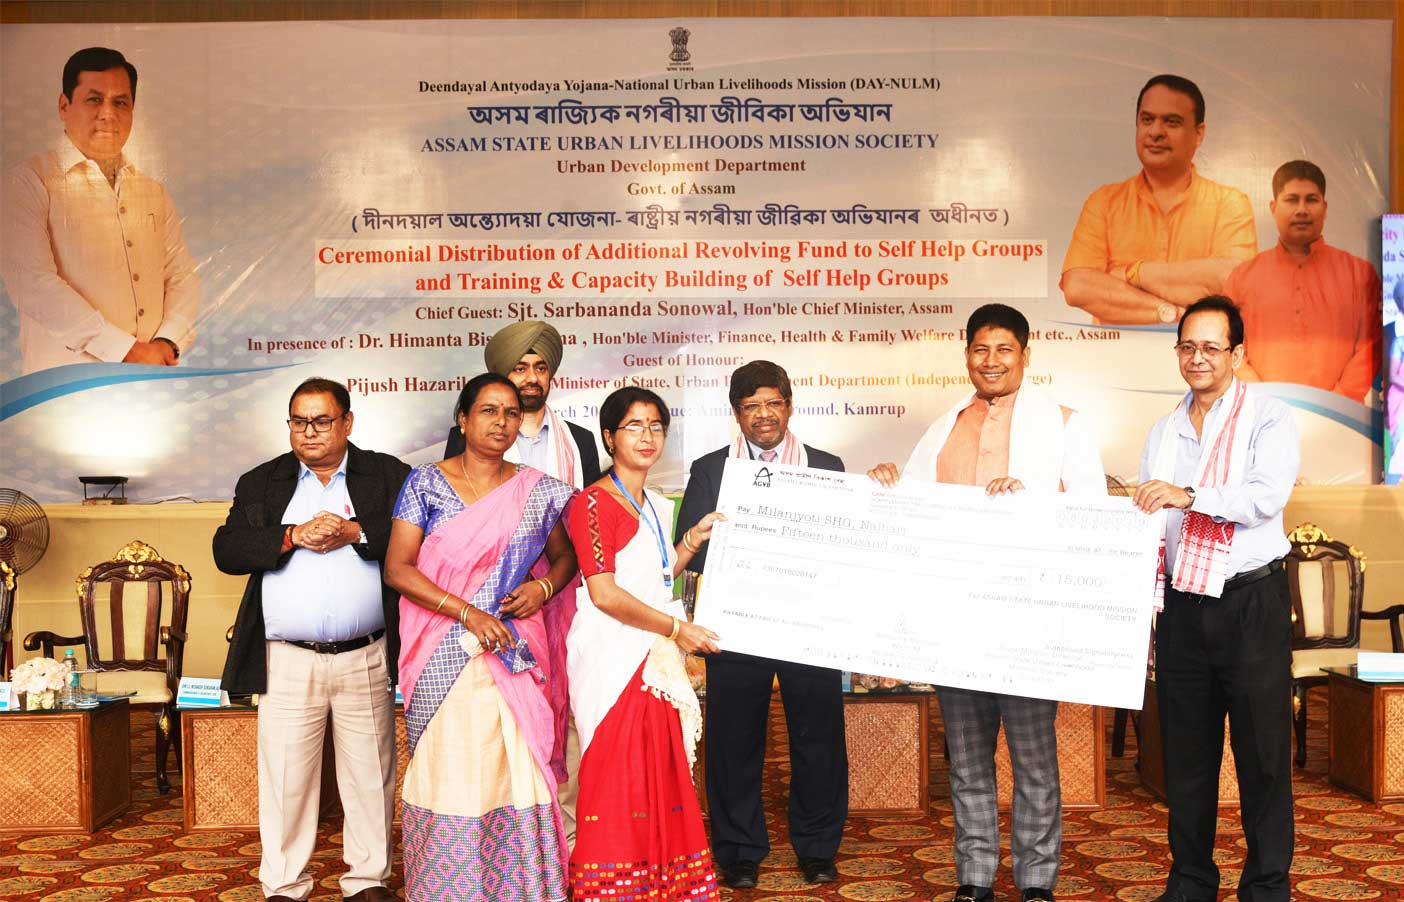 Additional Revolving Fund Distribution to SHGs under DAY NULM